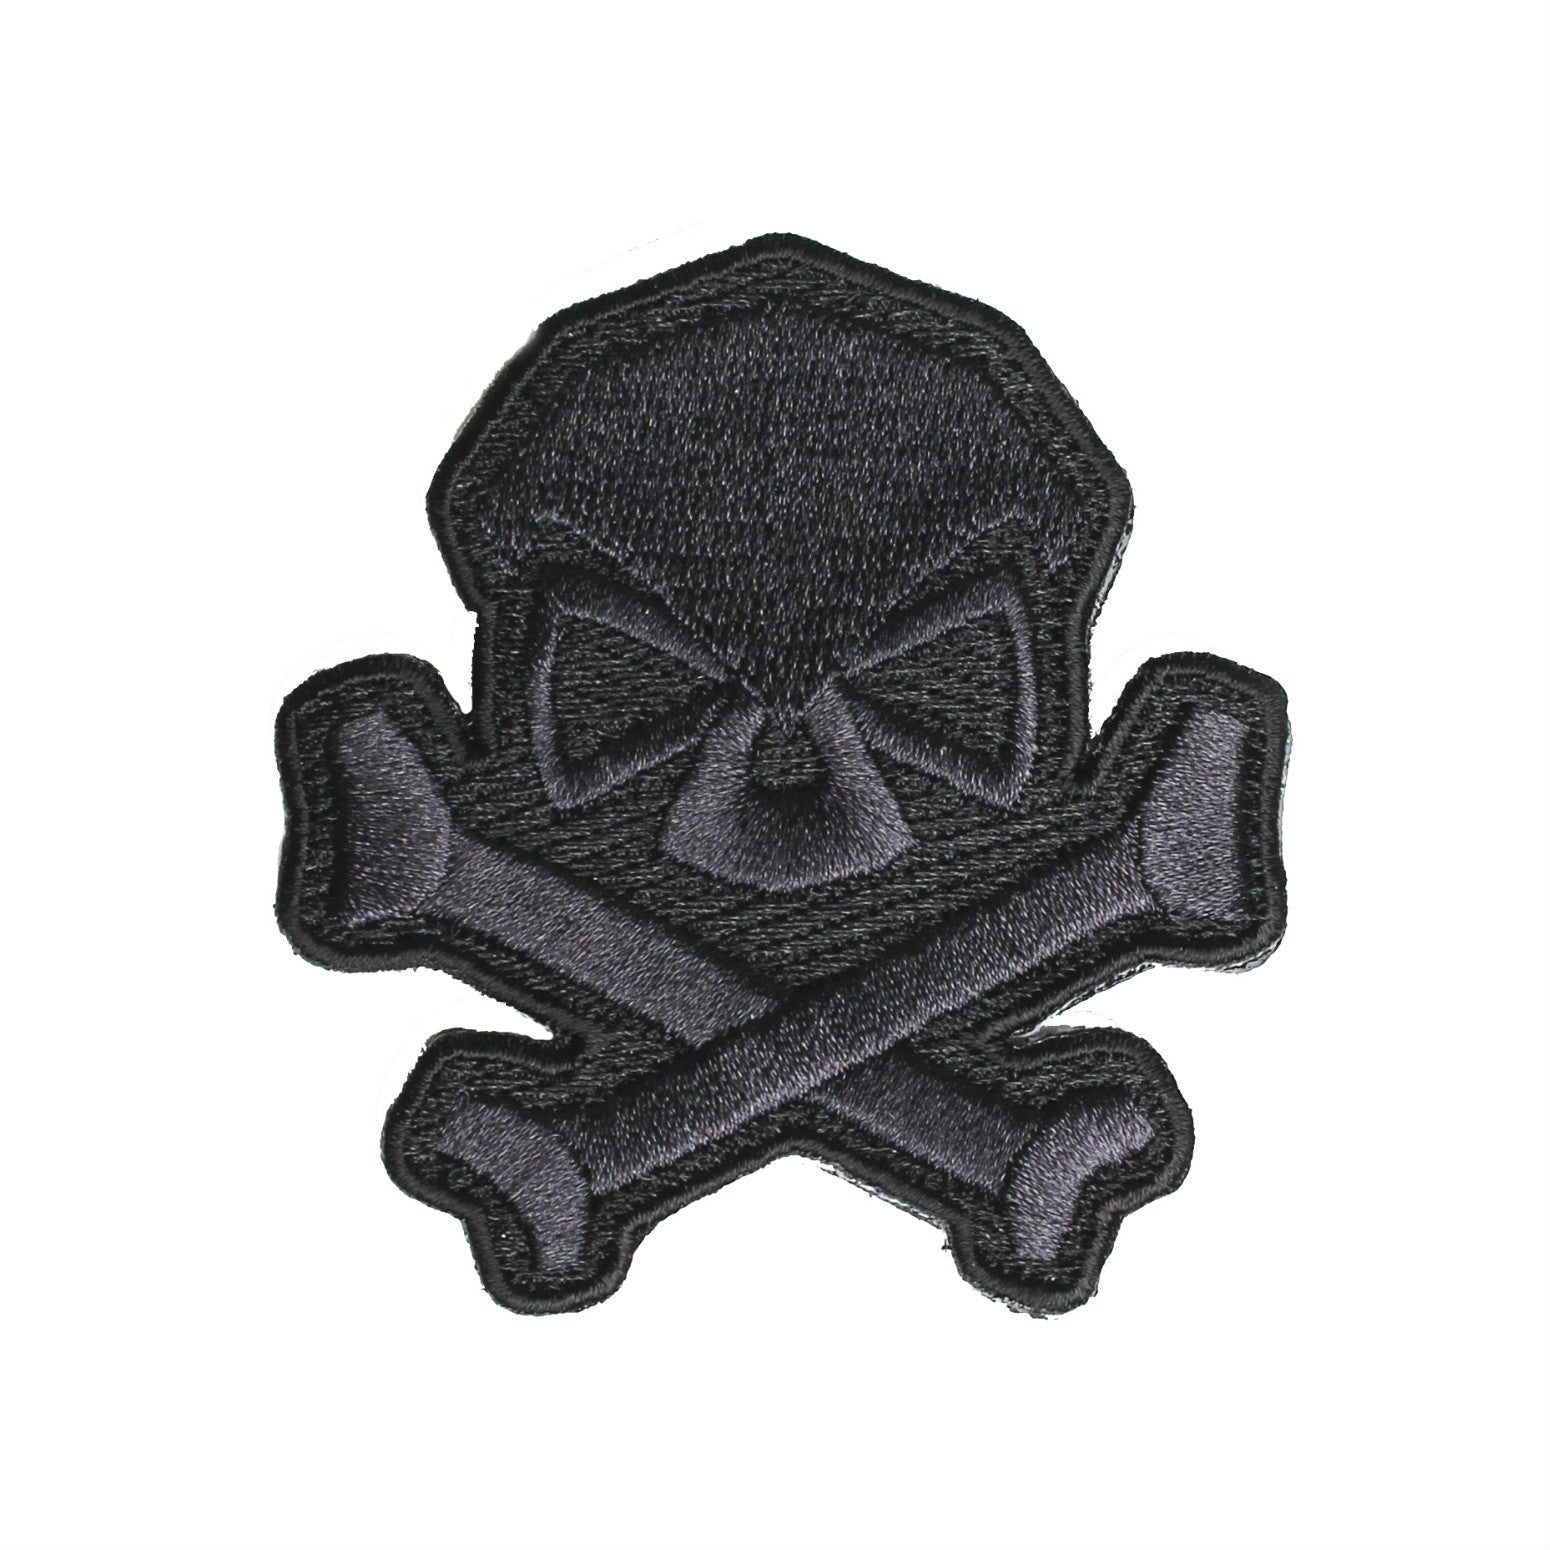 Skull & Bones Patch - Black - Patches - Pipe Hitters Union